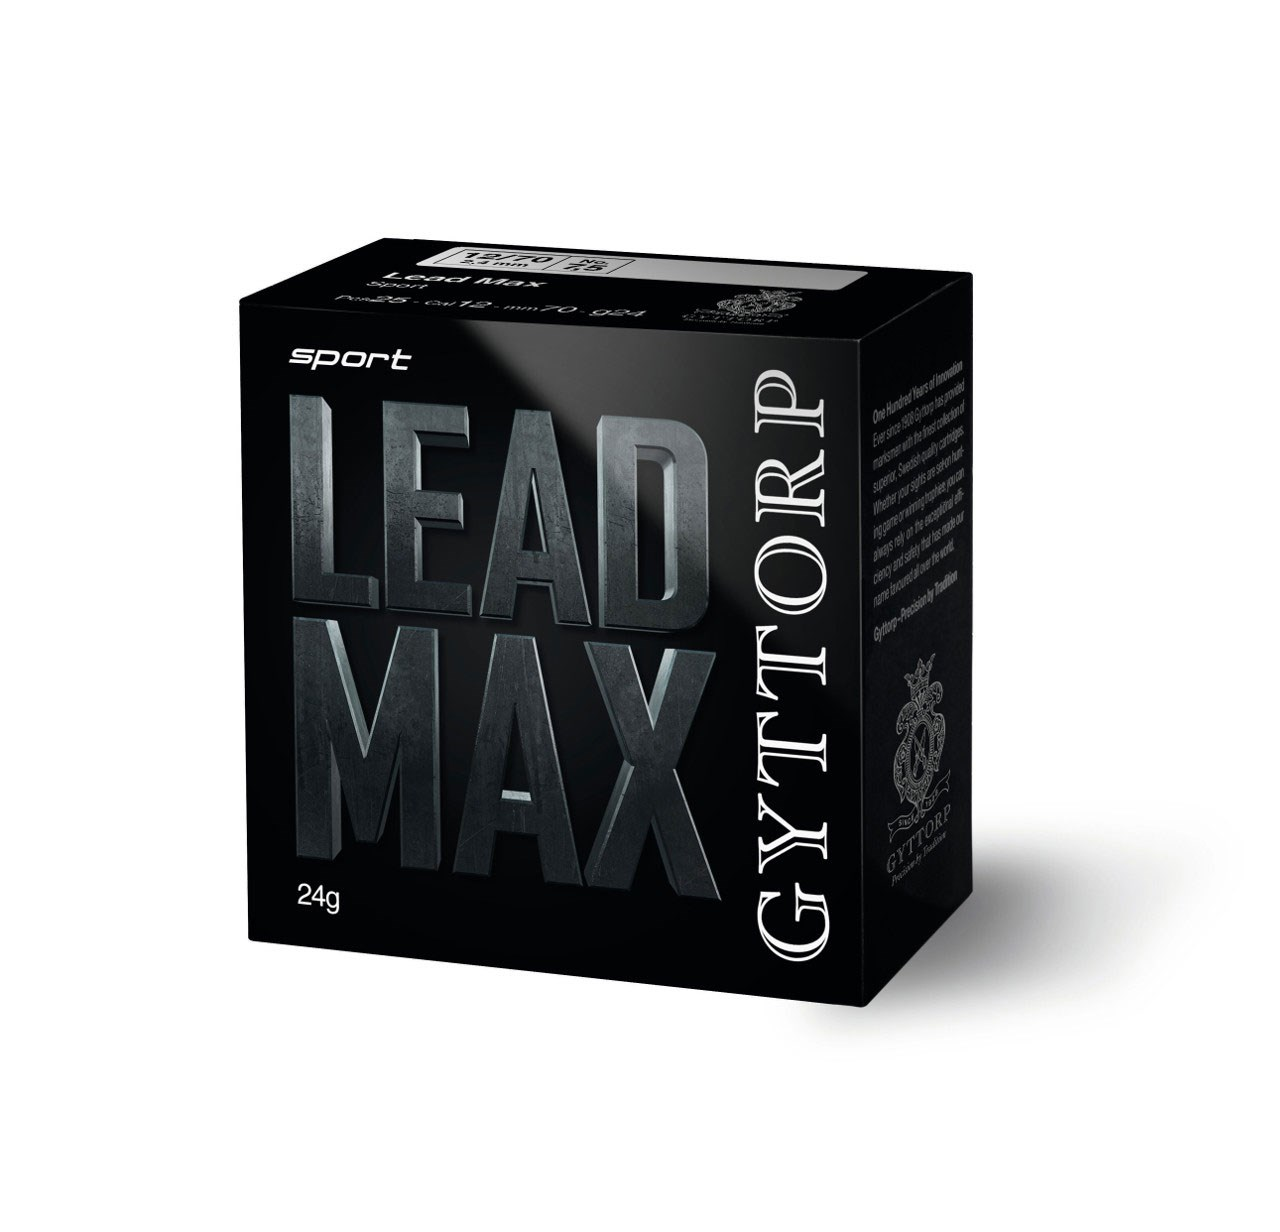 Gyttorp Leadmax 12 7,5 bly 24g.25ptr/fp